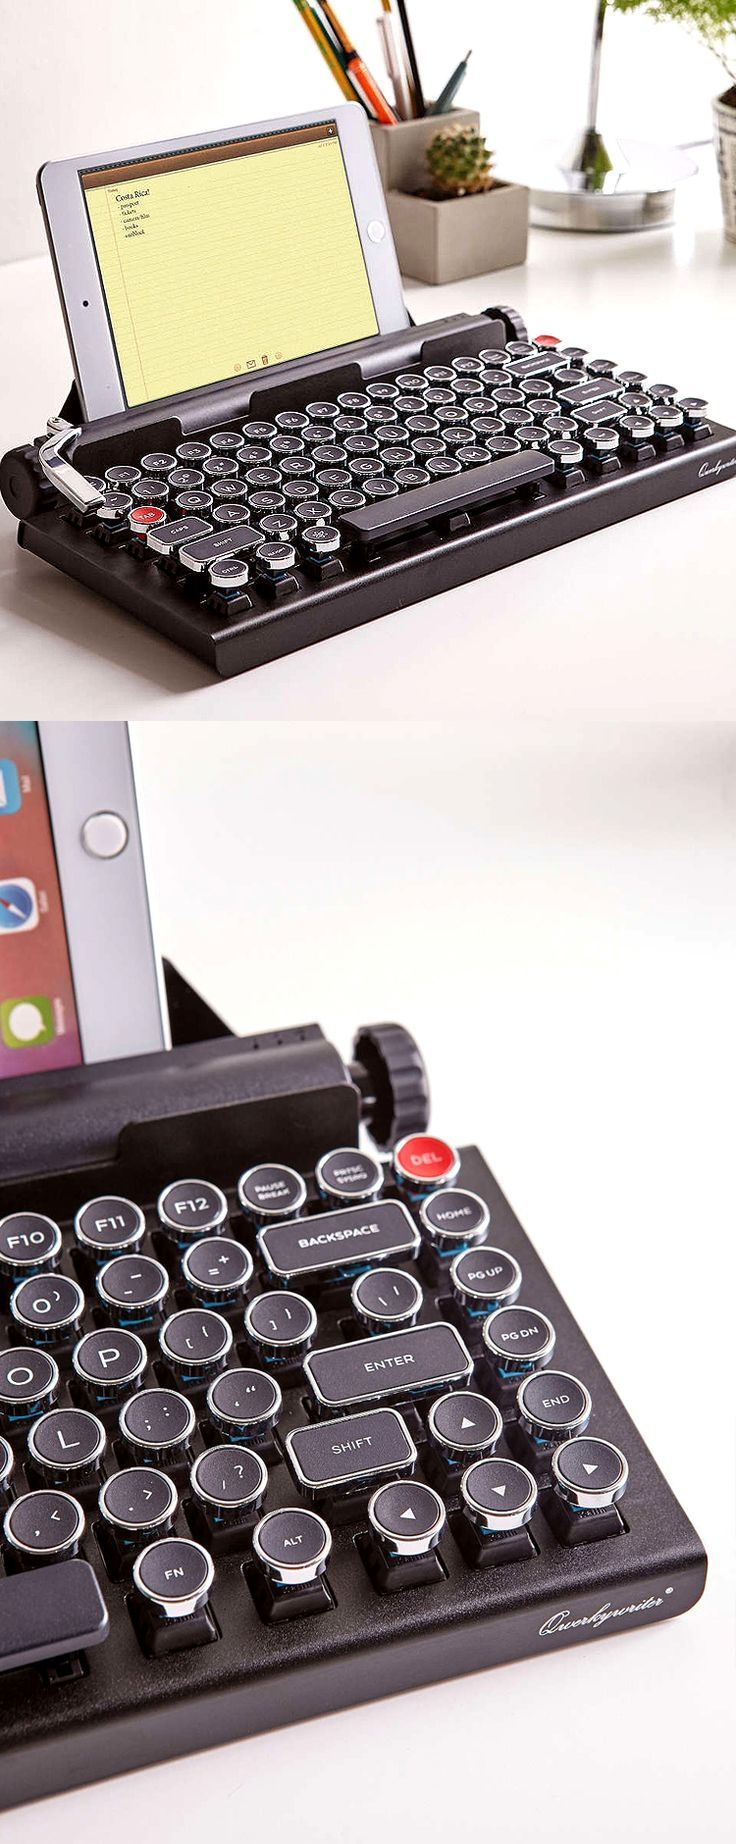 Qwerkywriter Wireless Typewriter Keyboard